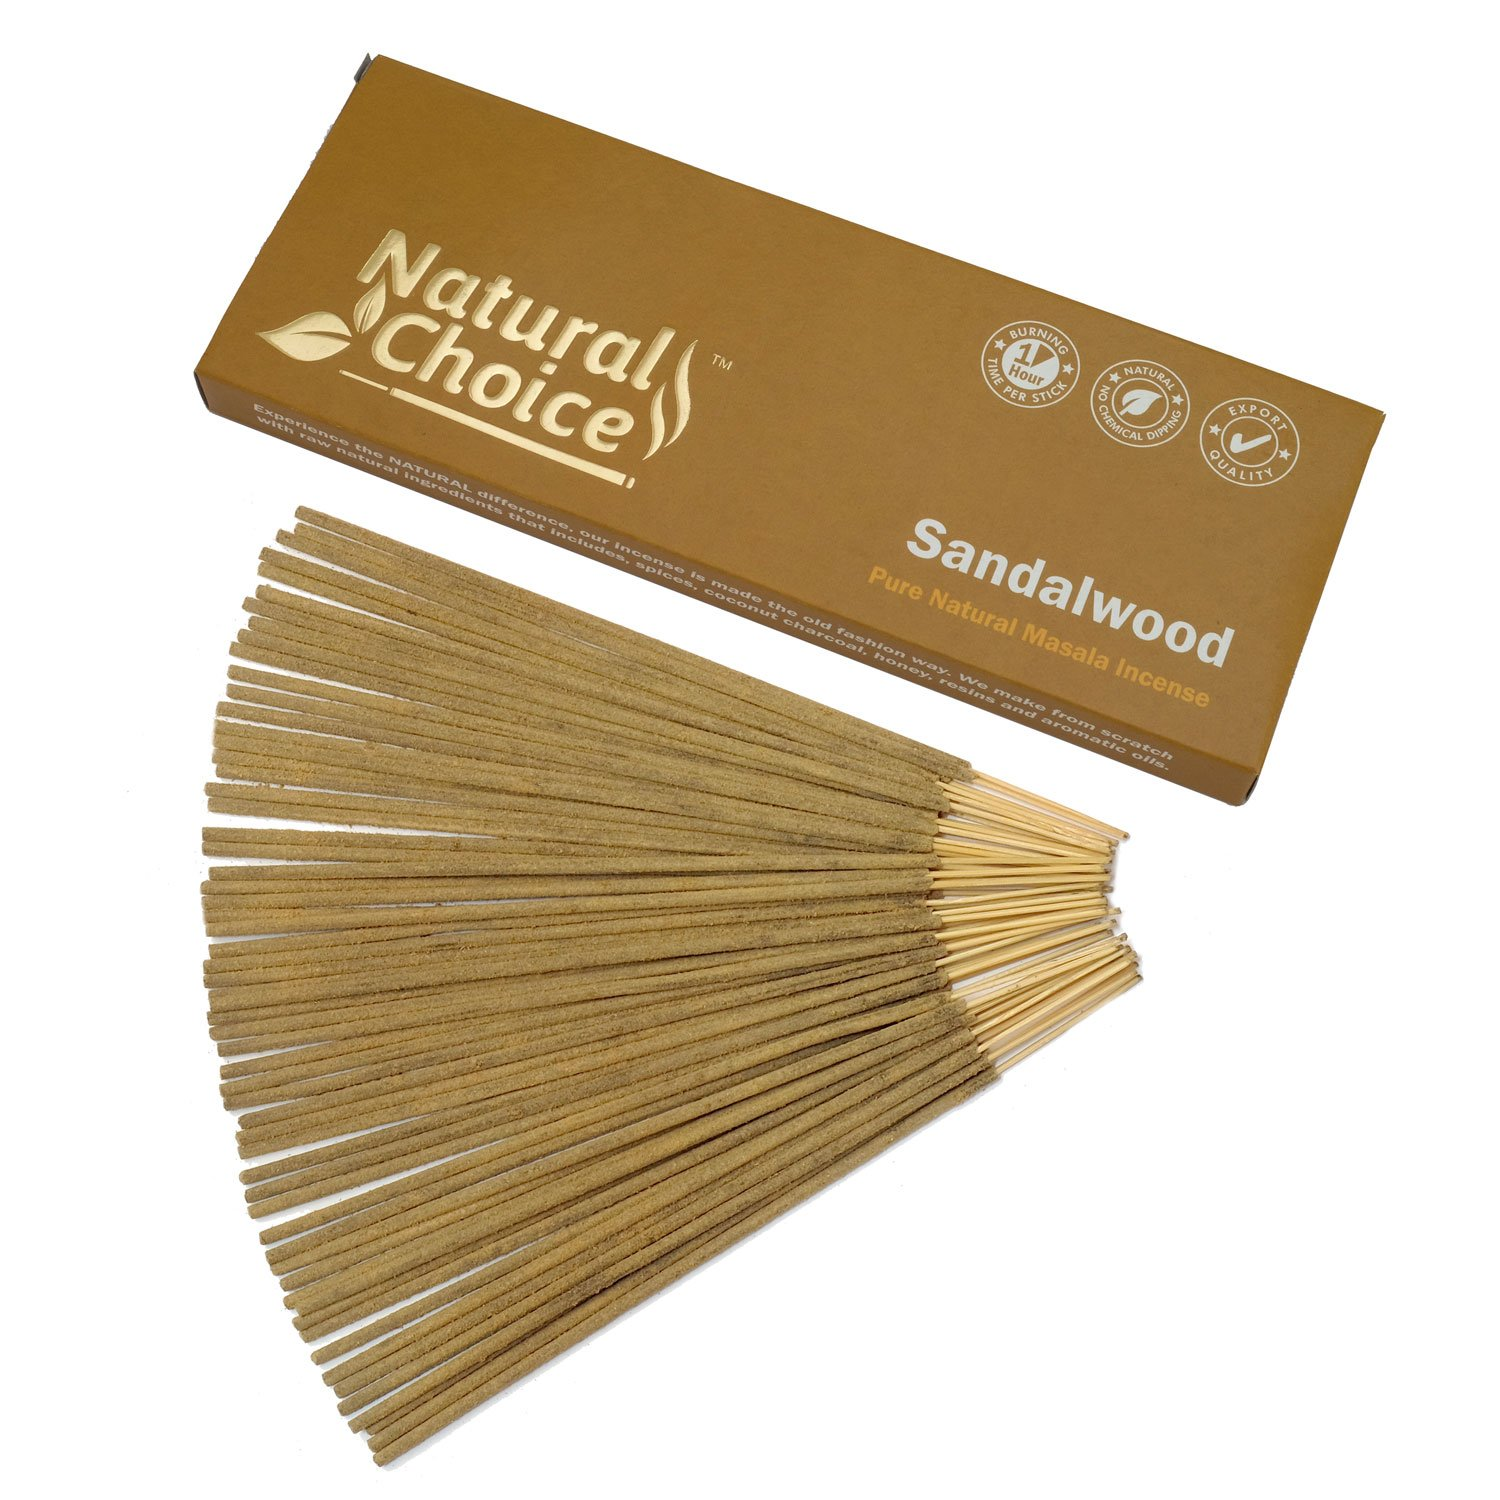 Natural Choice Incense Sandalwood Incense Sticks 100 Grams, Low Smoke Traditional Incense Sticks Made from Scratch, Never Dipped by Natural Choice Incense